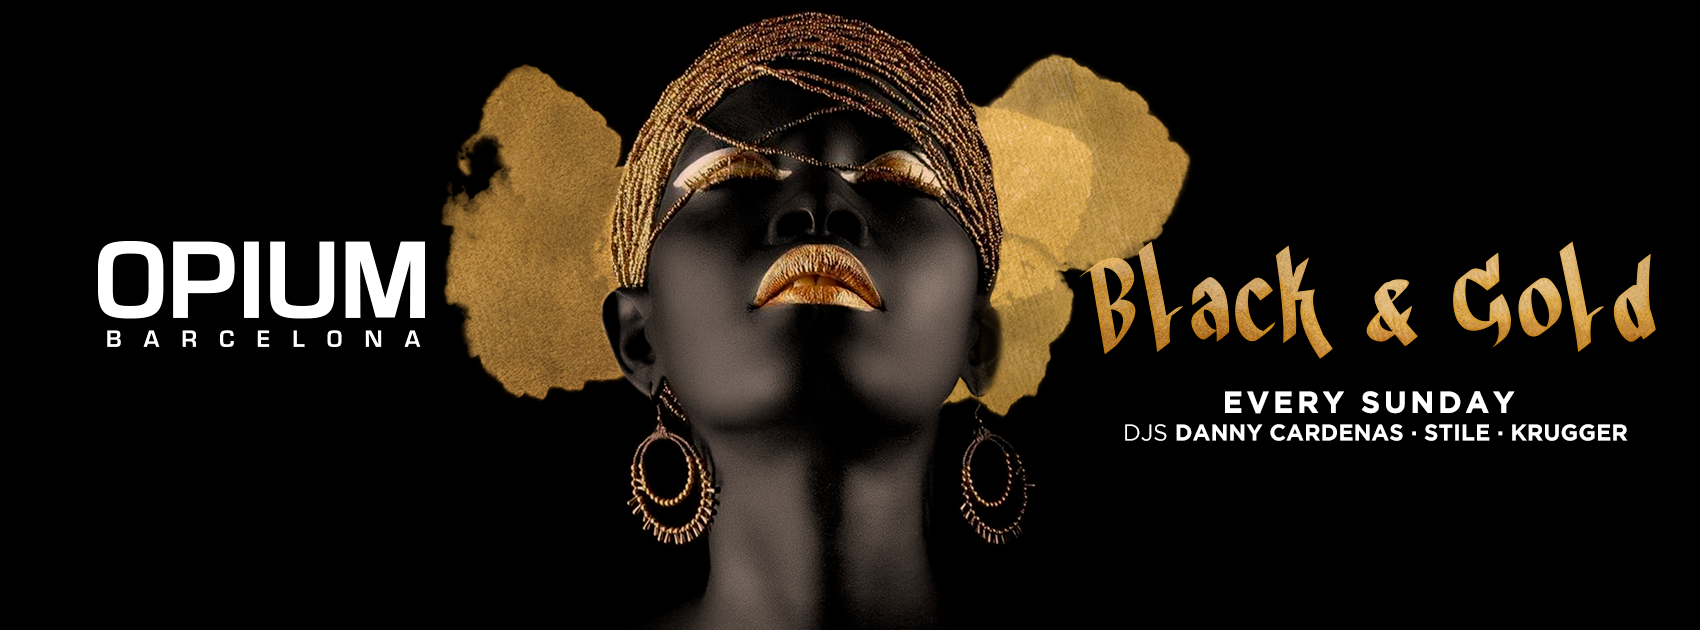 DOMINGO | Black & Gold - Club Opium Barcelona